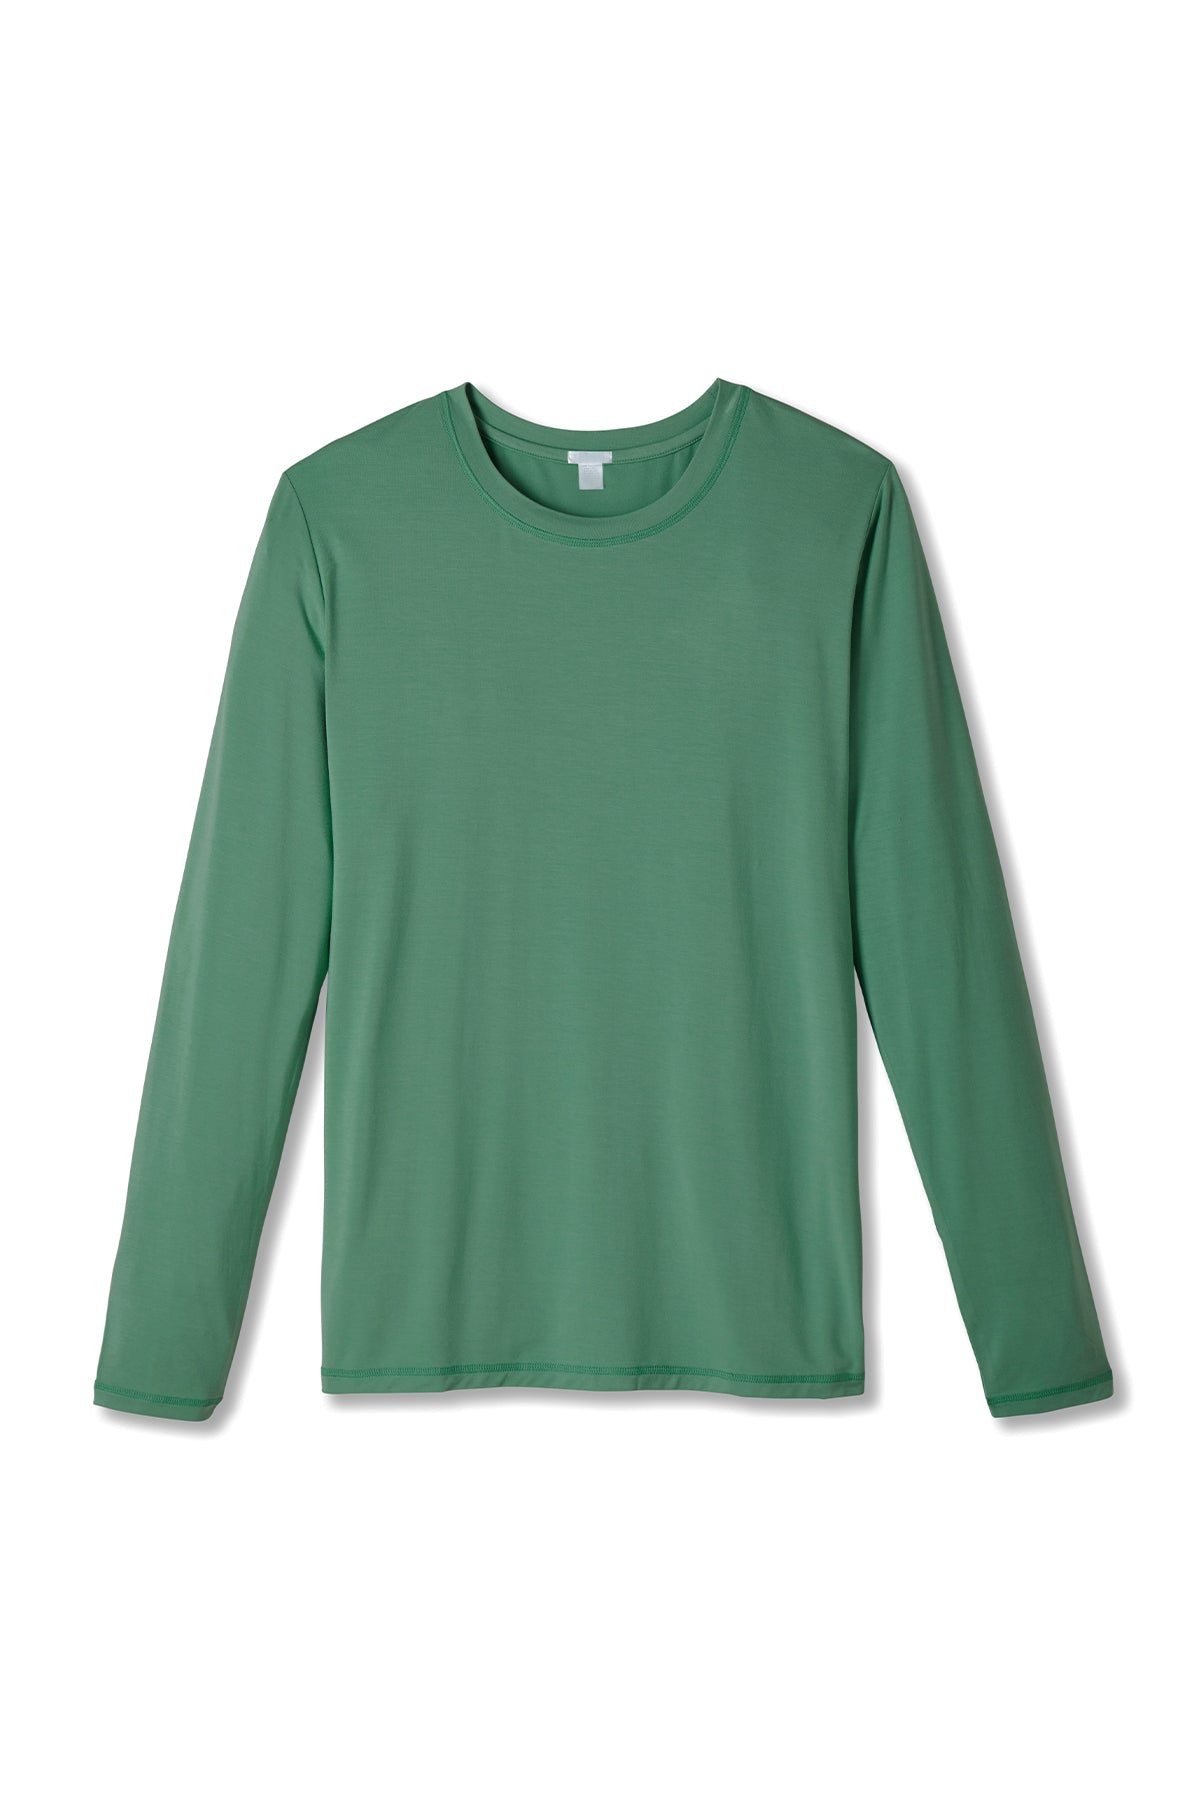 Men's Long Sleeve Pima Tee in Classic Green